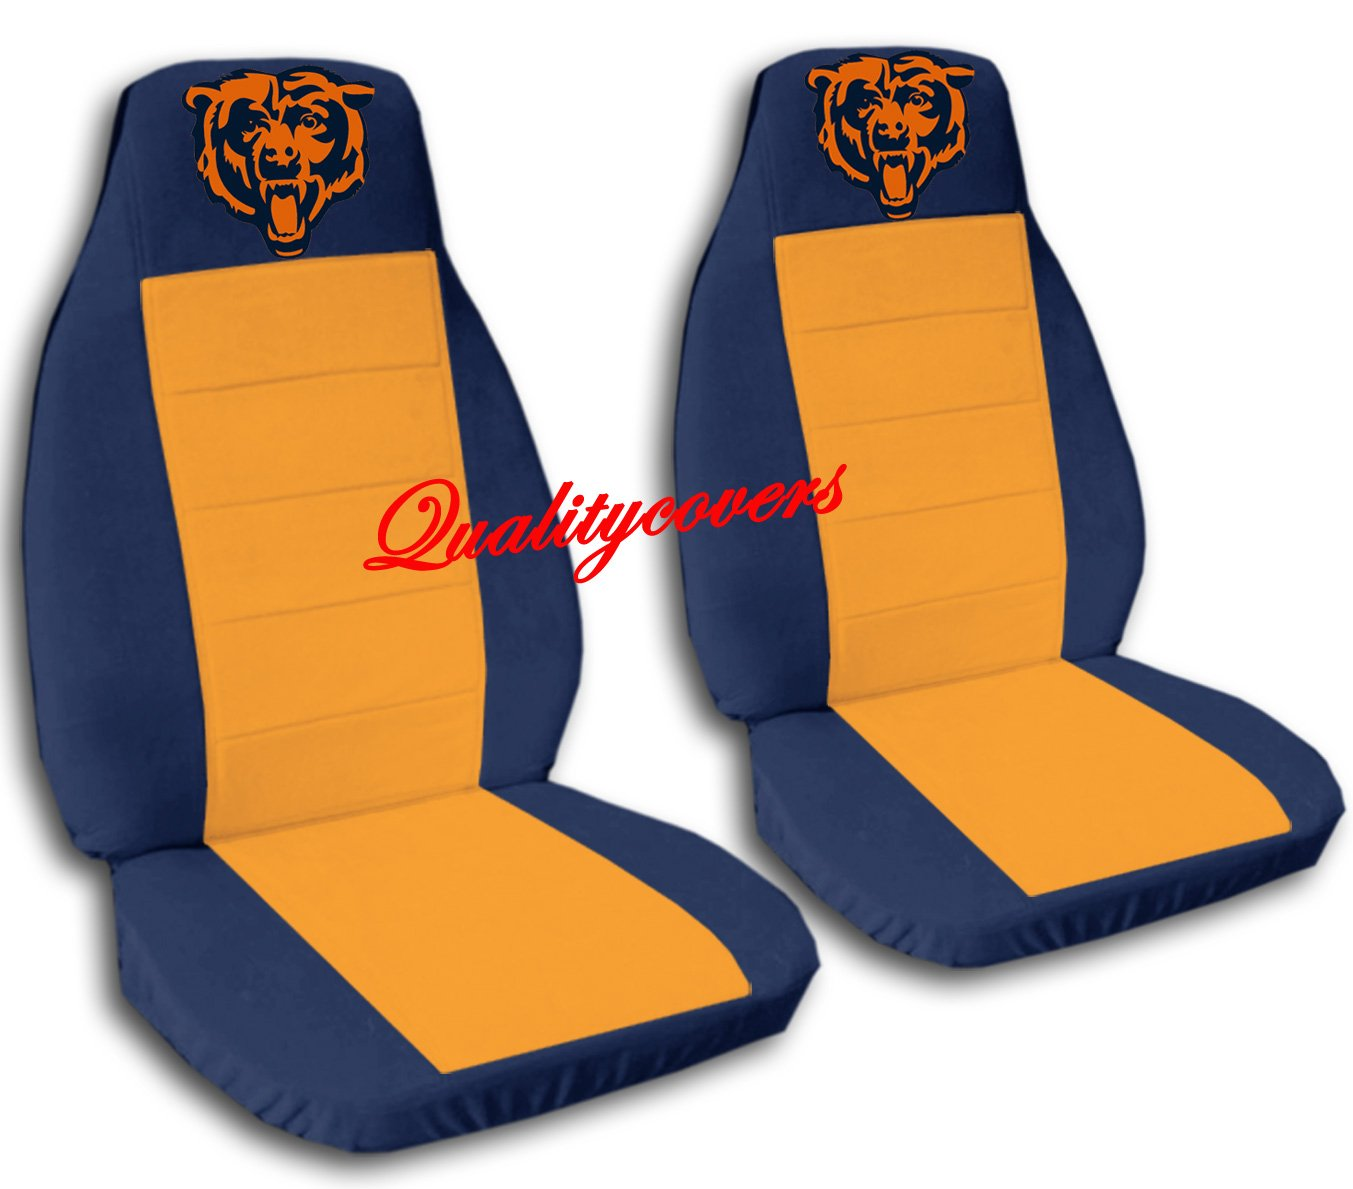 2 Navy Blue and Orange Chicago seat covers for a 2007 to 2012 Ford Fusion. Side airbag friendly.